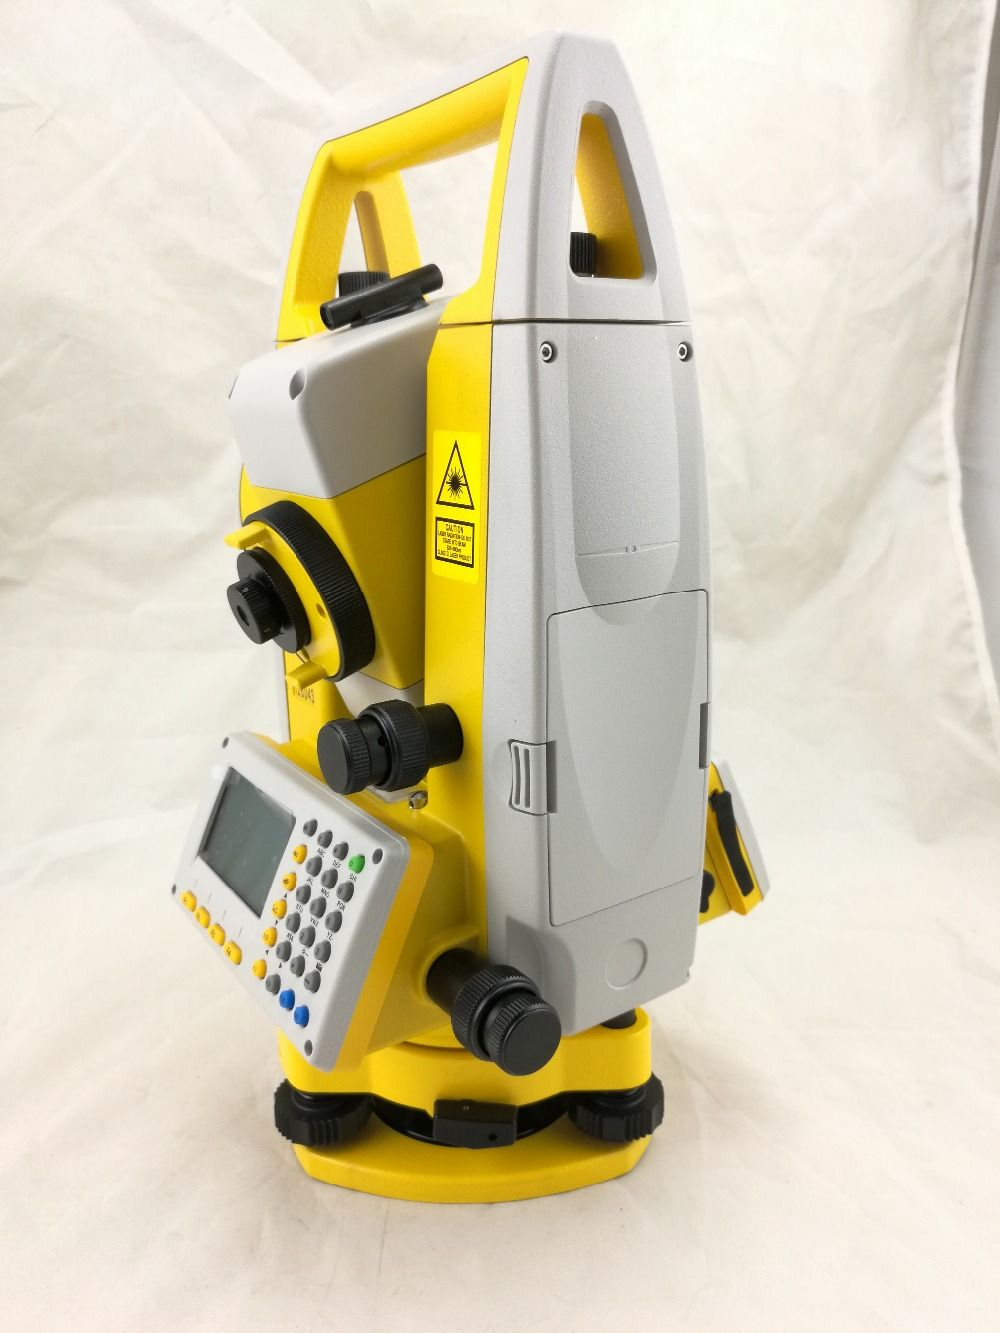 Total Station,SD card derivative according to, NTS-312R+, South, whole sale, retail